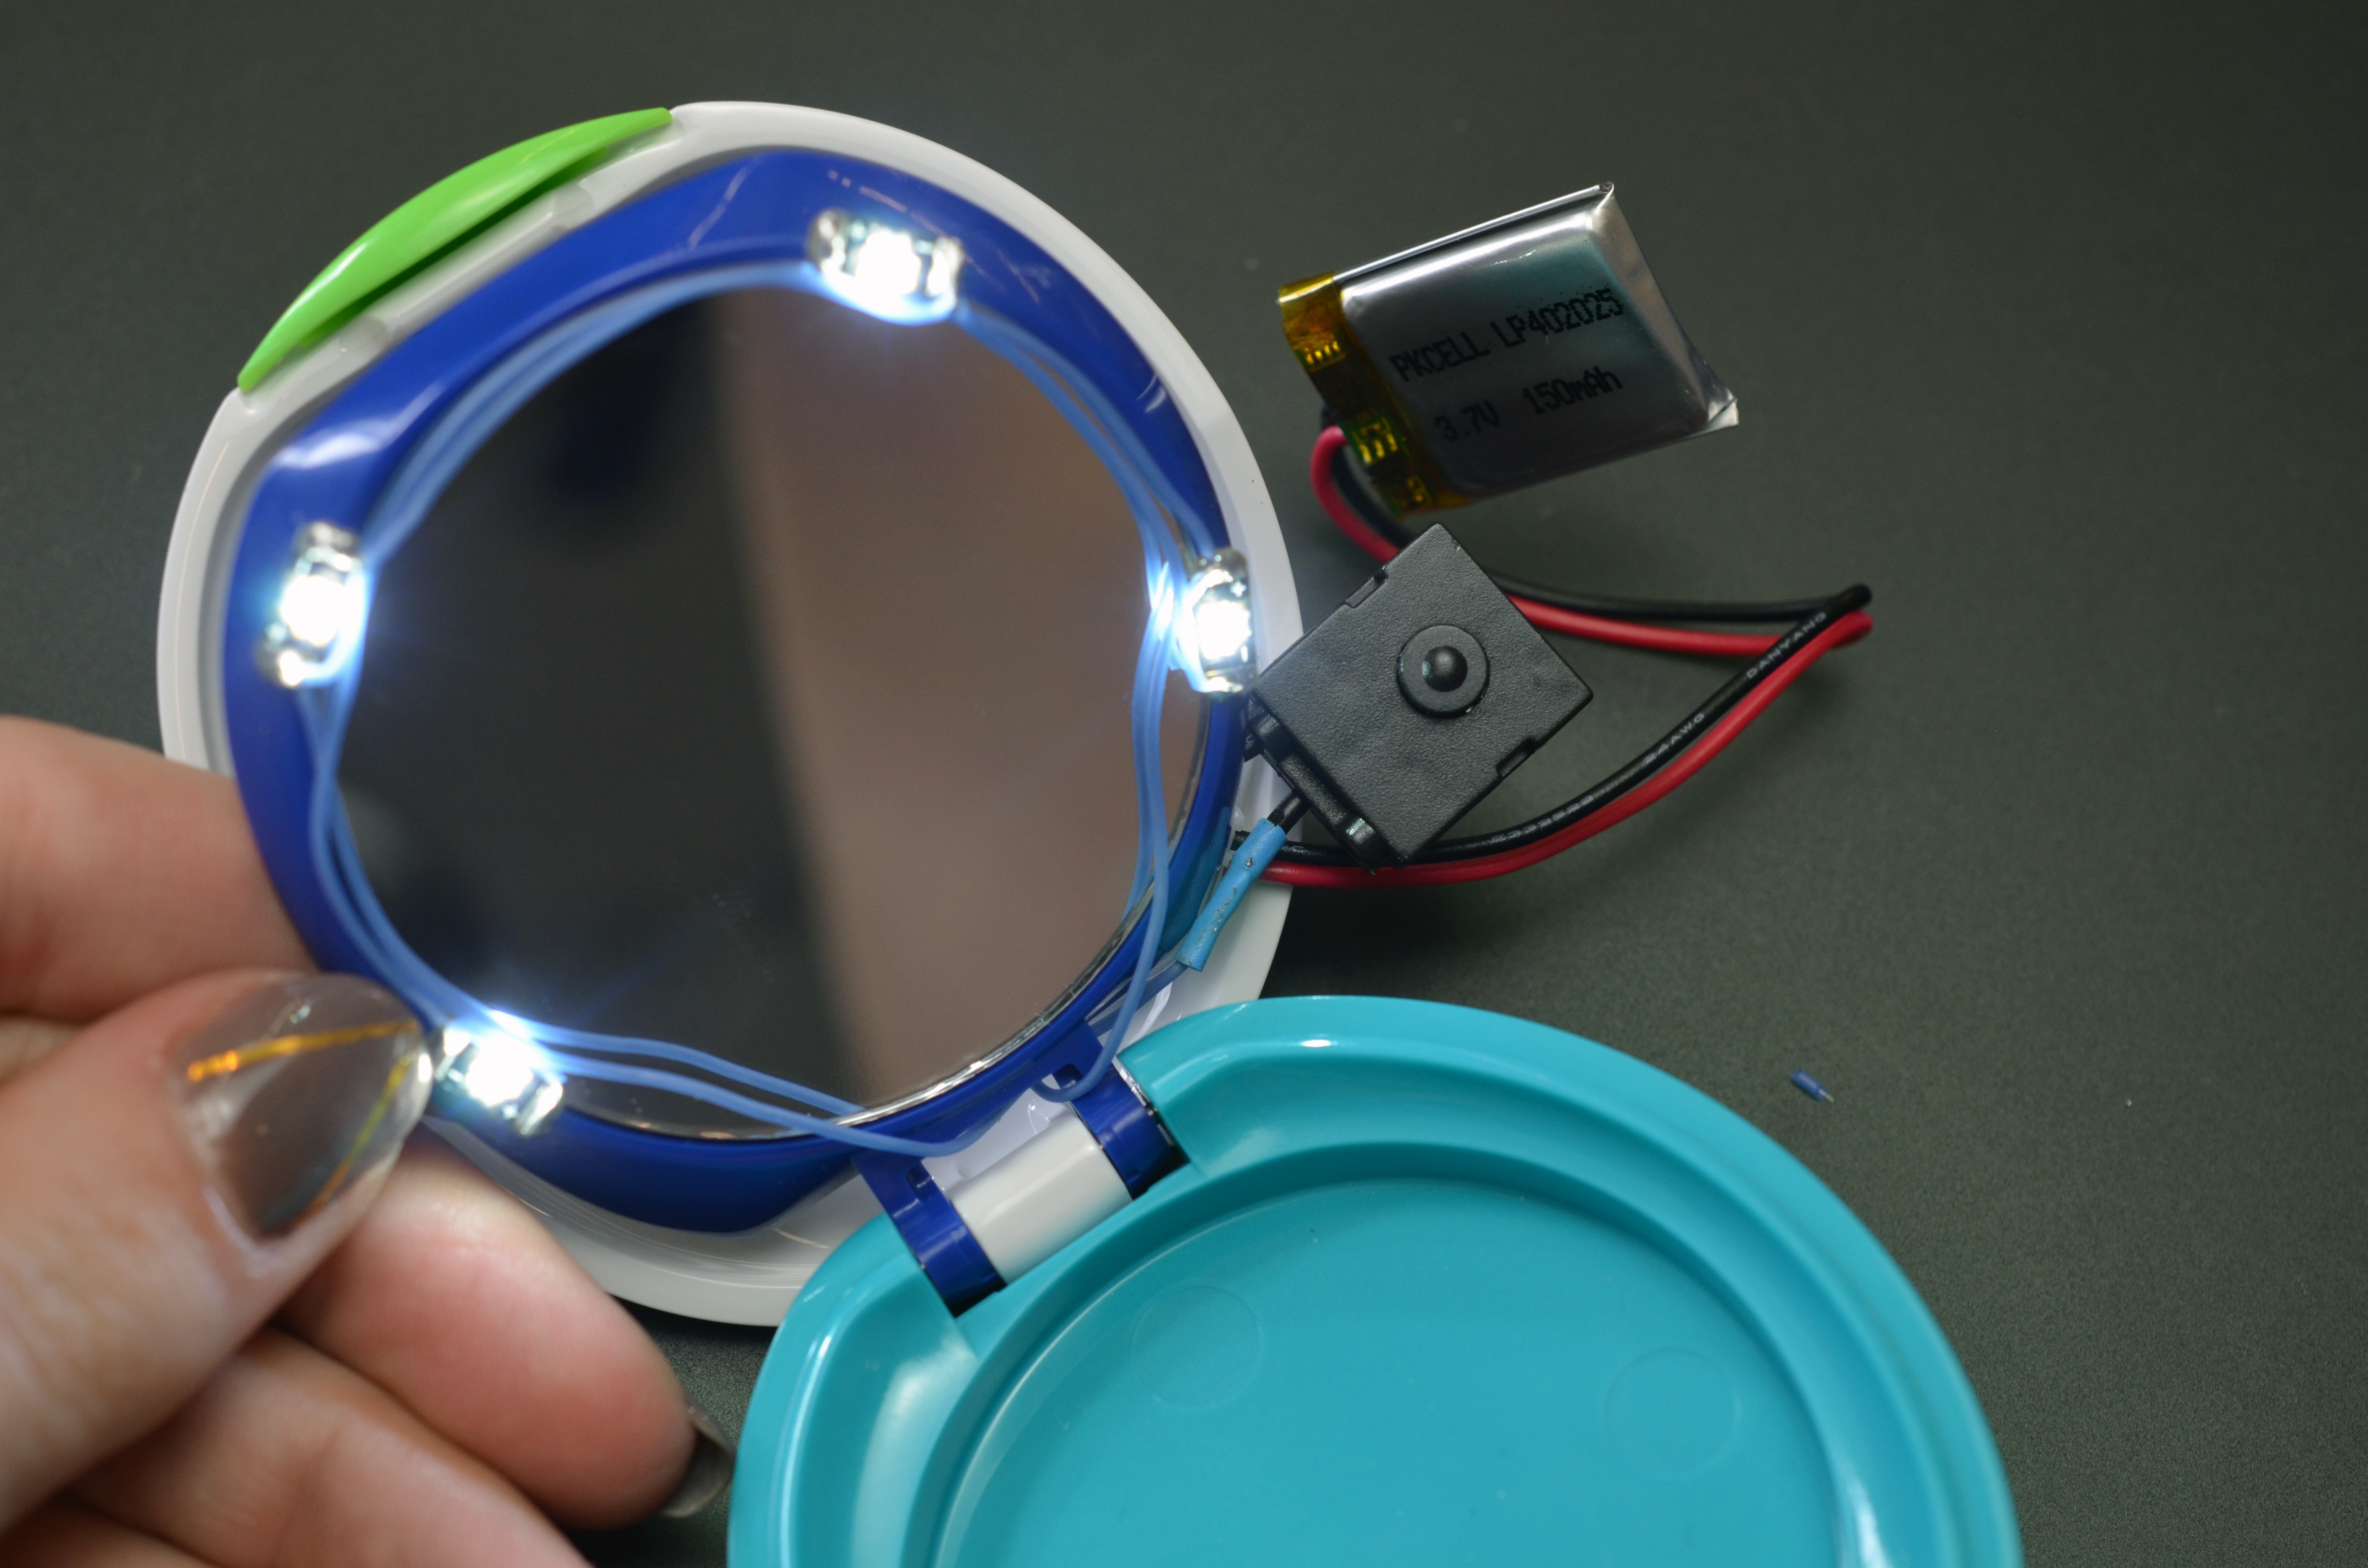 projects_DIY-LED-makeup-compact-mirror-14.jpg